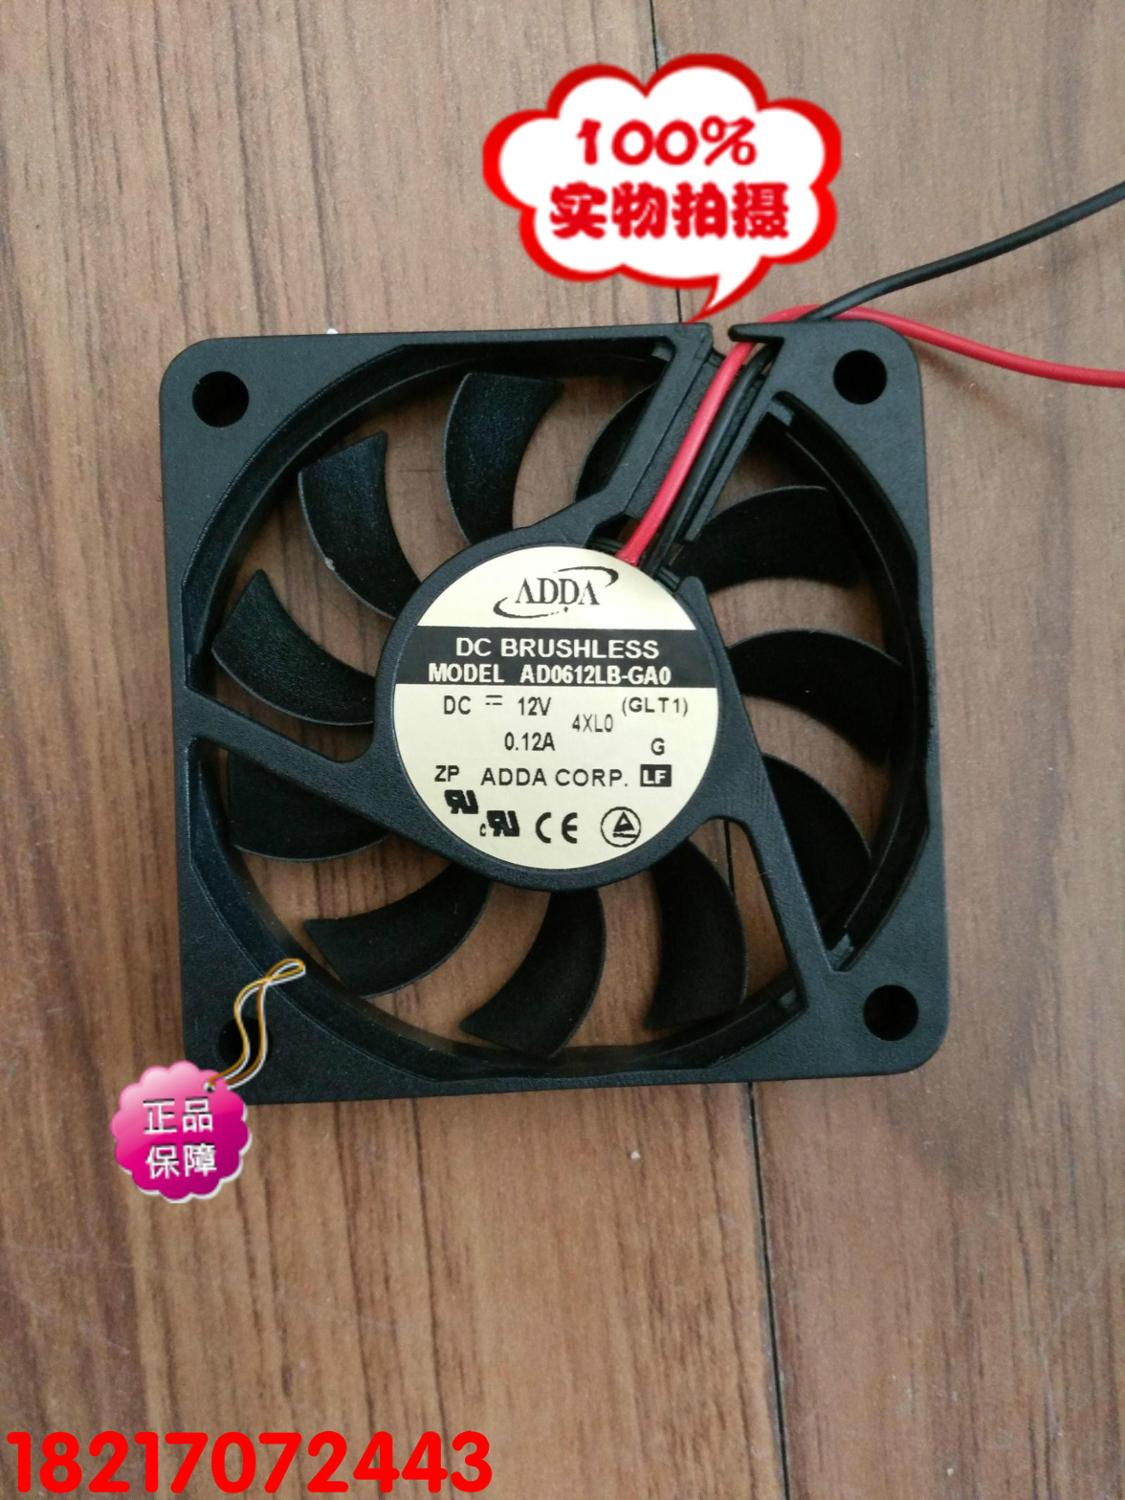 NO HEATSINK AD0612LB-G76 T ; AD0612LB-G76-LF ; ADDA 60x60x10mm Server Square Fan ONLY